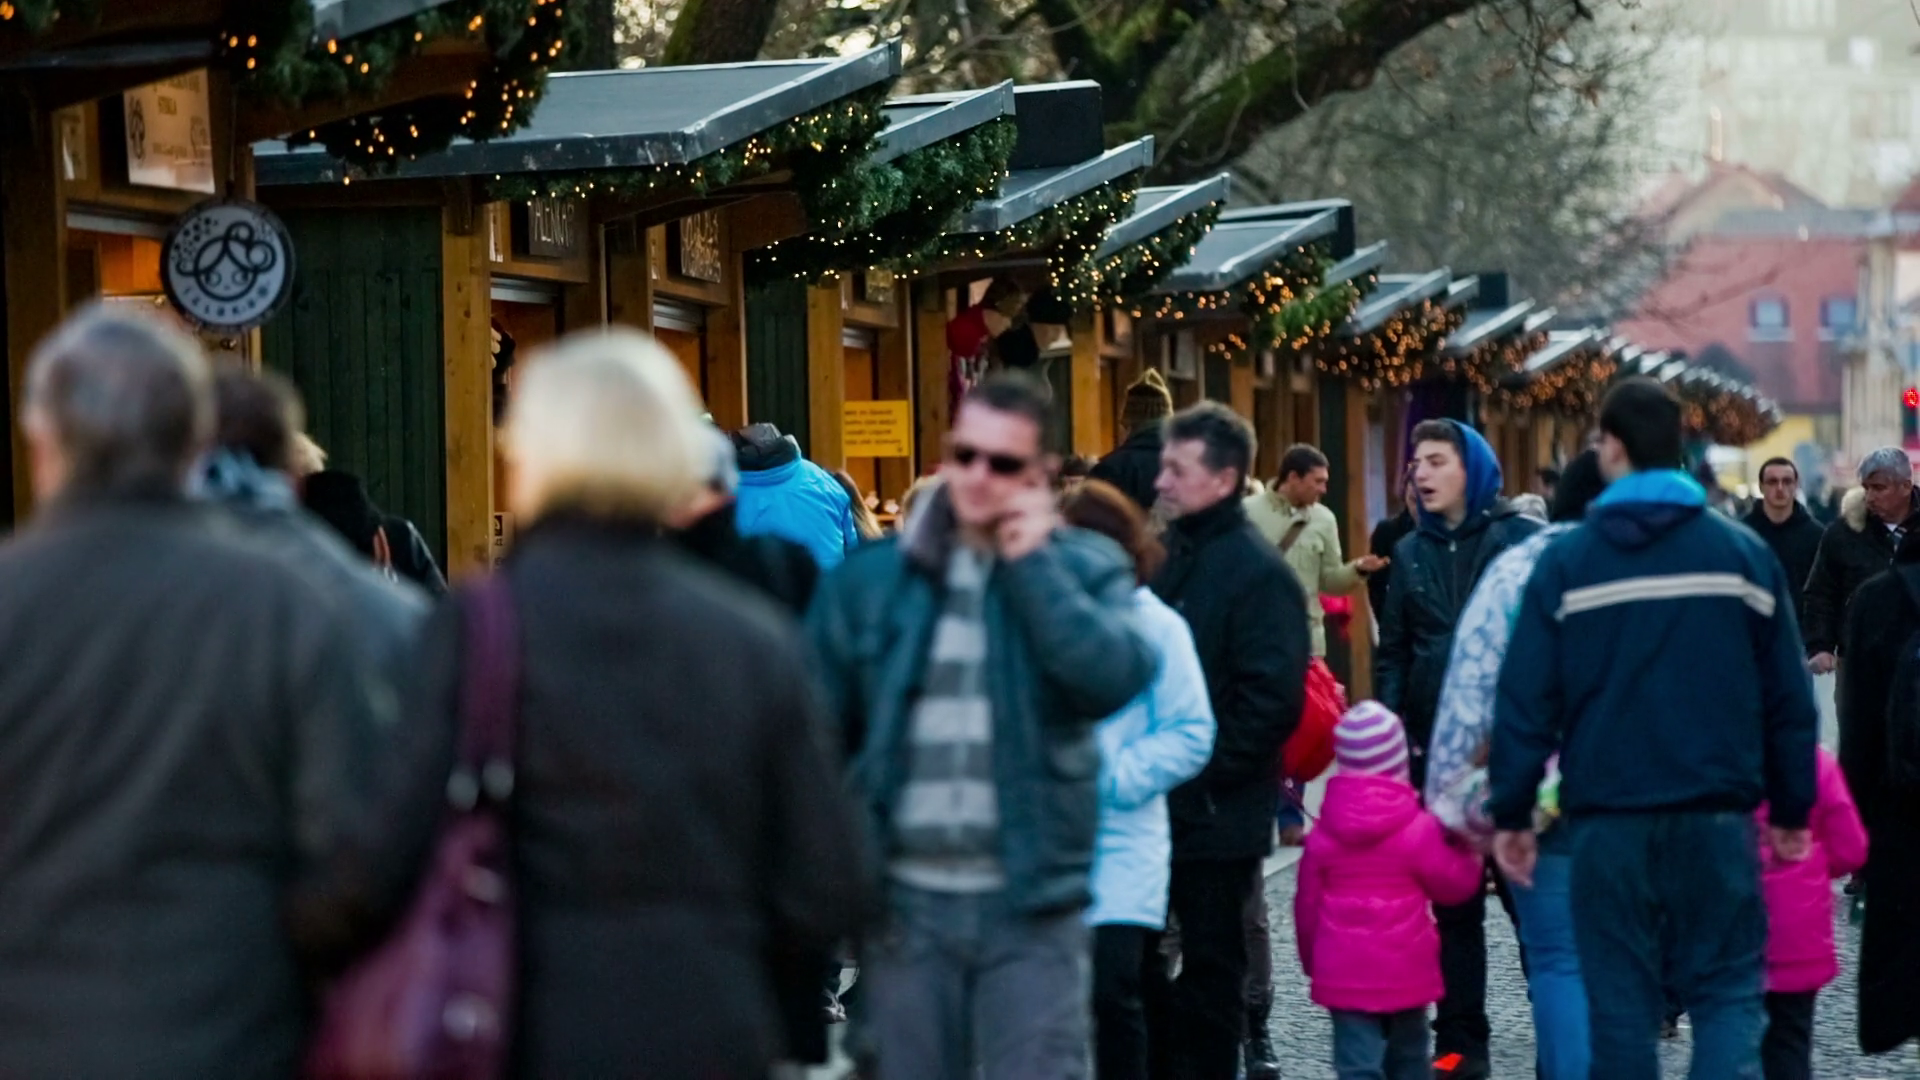 Ljubljana Slovenia December 2014 People Walking Around Wooden Shooping Booths Many People Around Christmas Time Going On A Walk Through City Center And Look Through Small Booth Selling Goods Stock Video